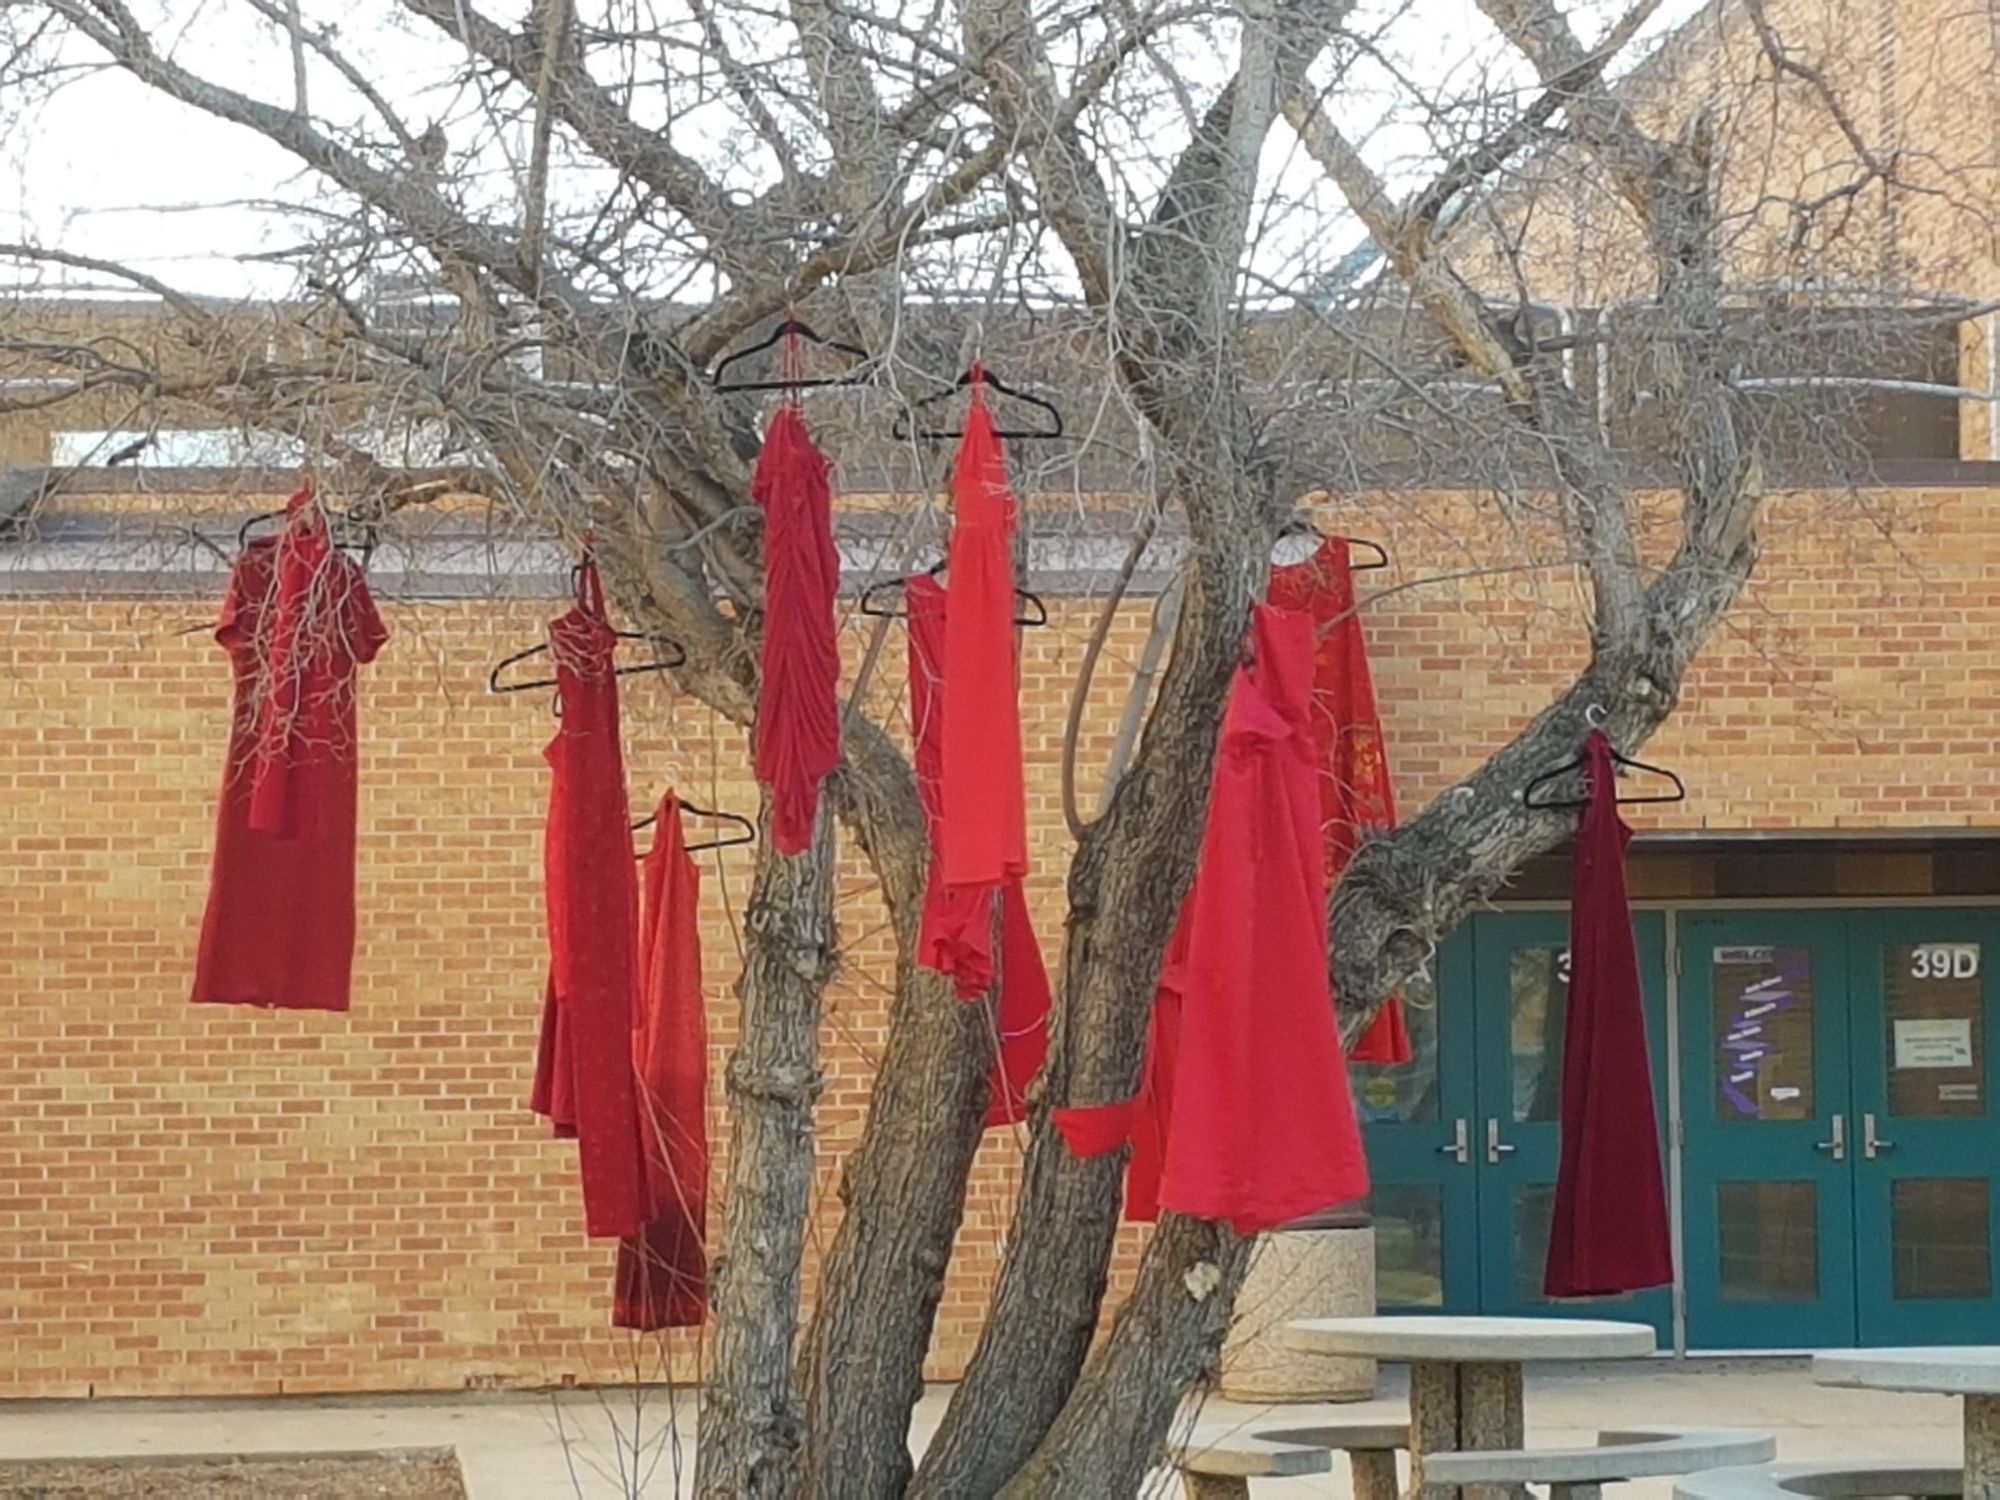 red dresses in tree